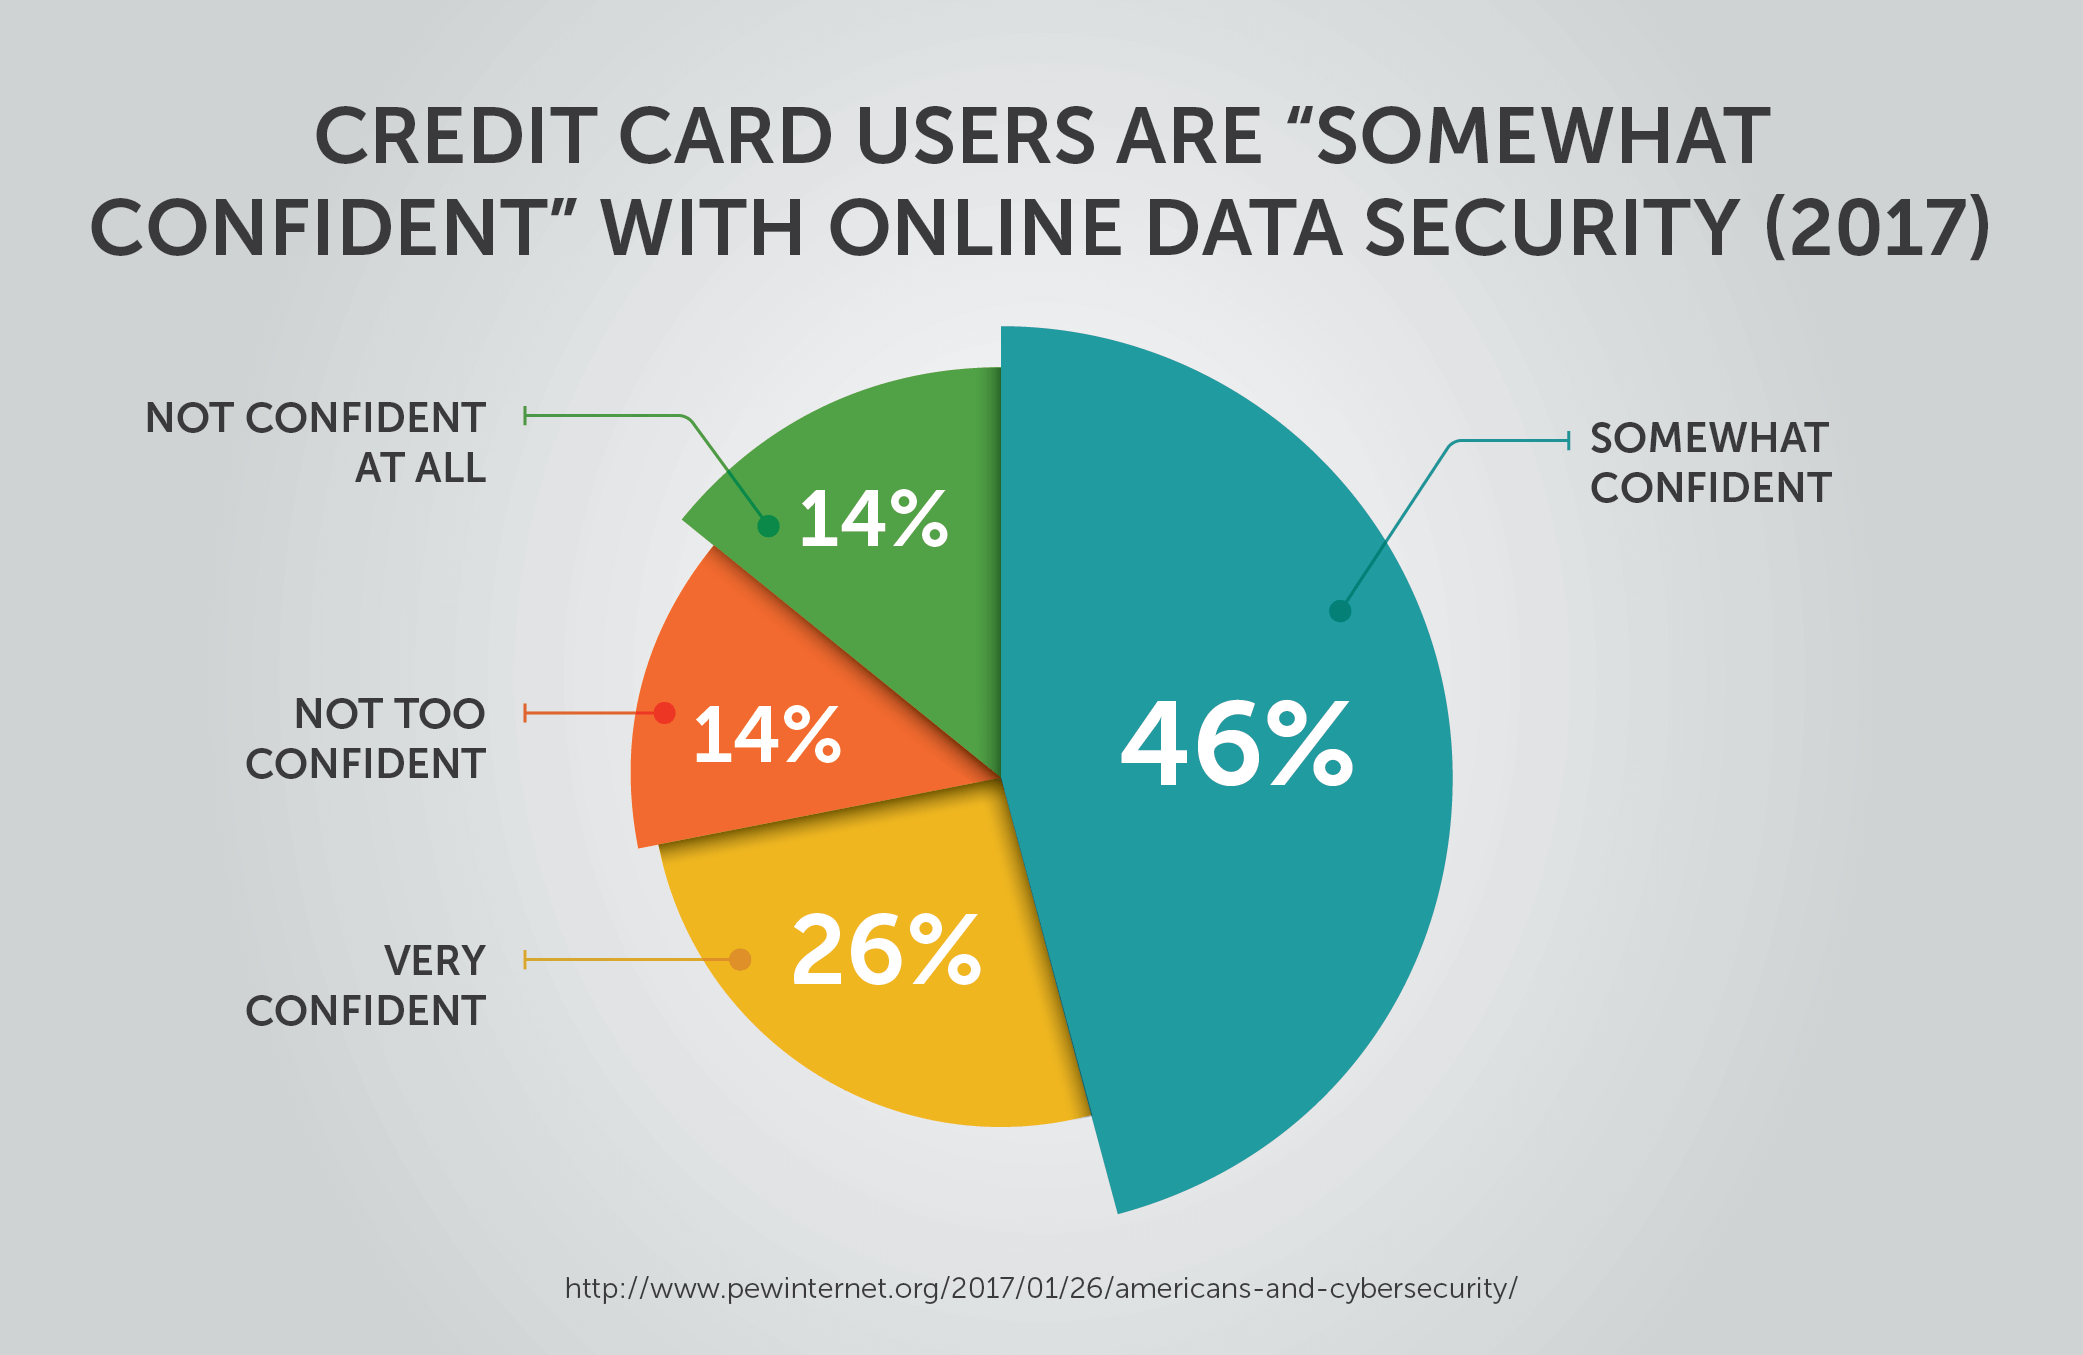 Credit Card Users are Somewhat Confident with Online Data Security (2017)